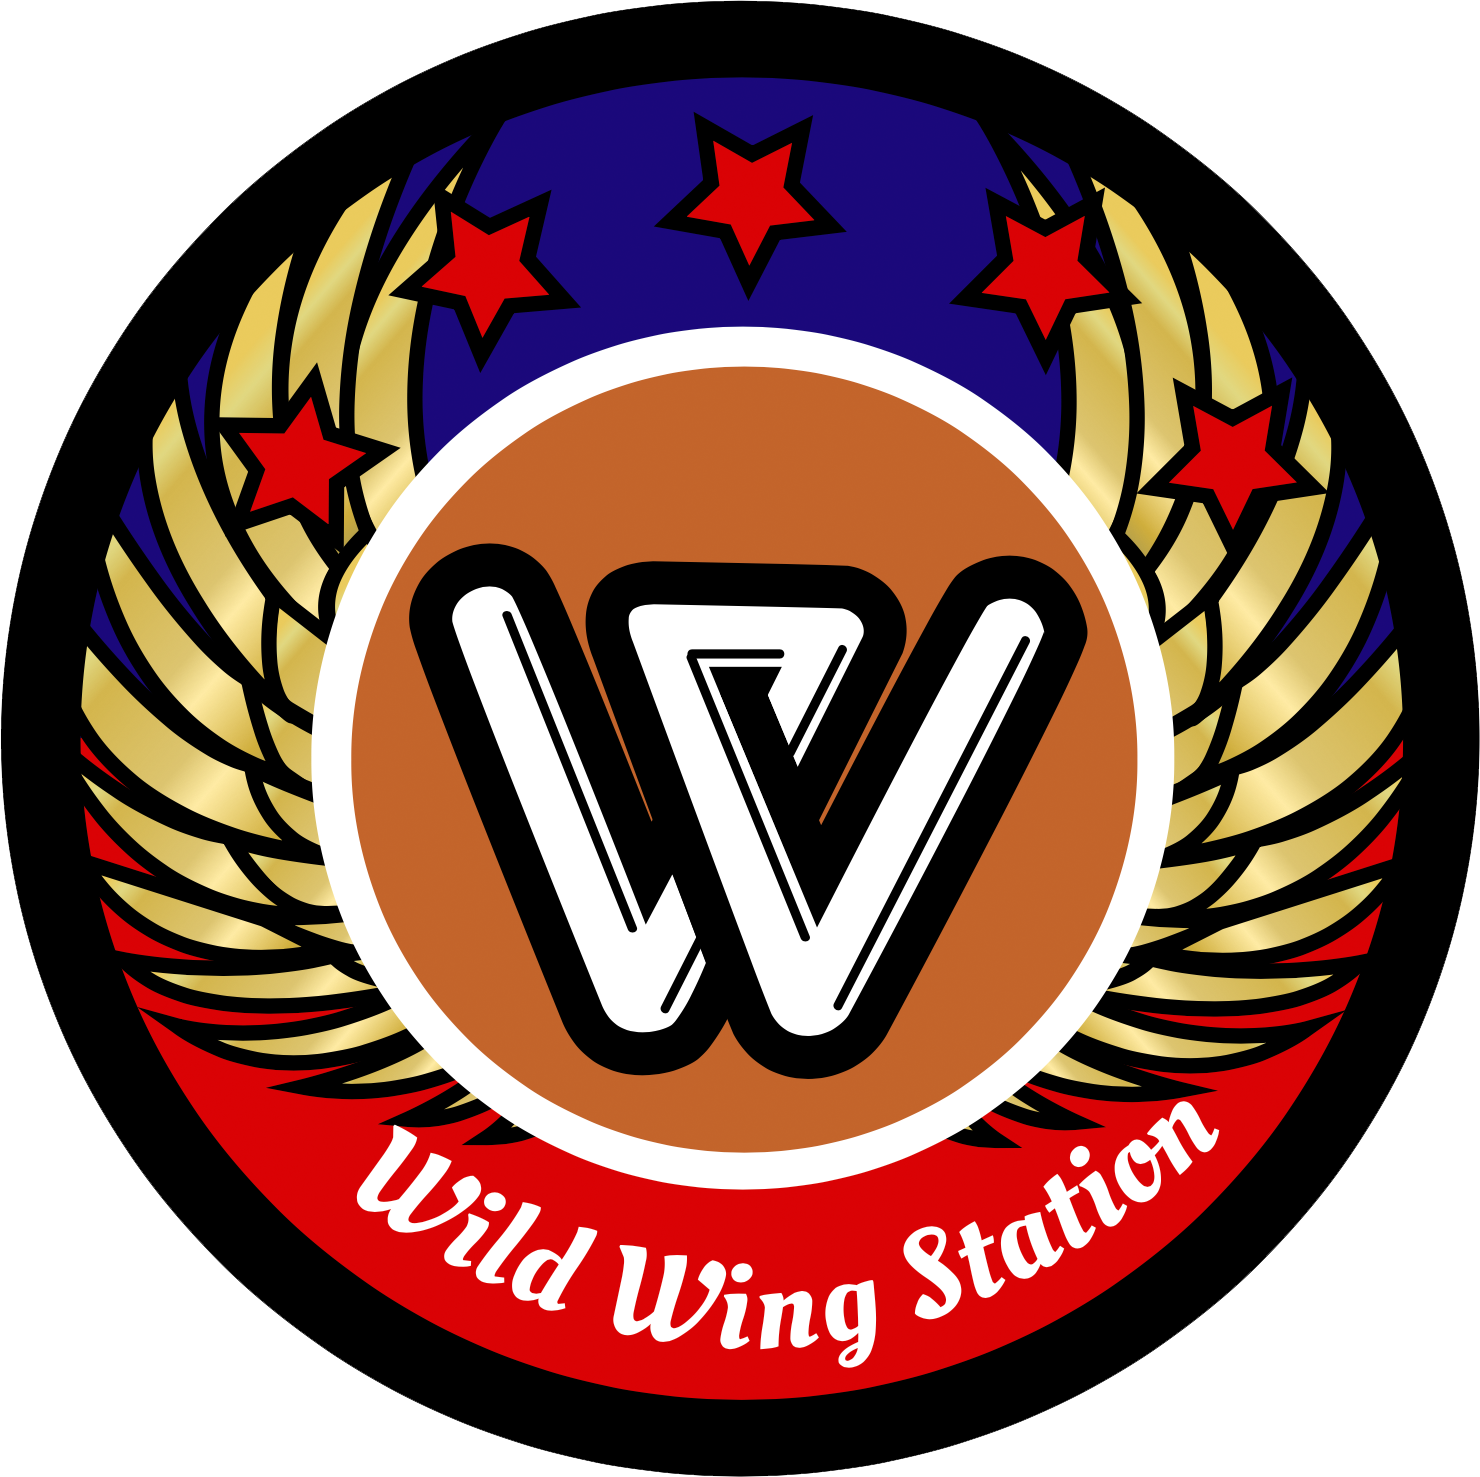 Wild Wing Station